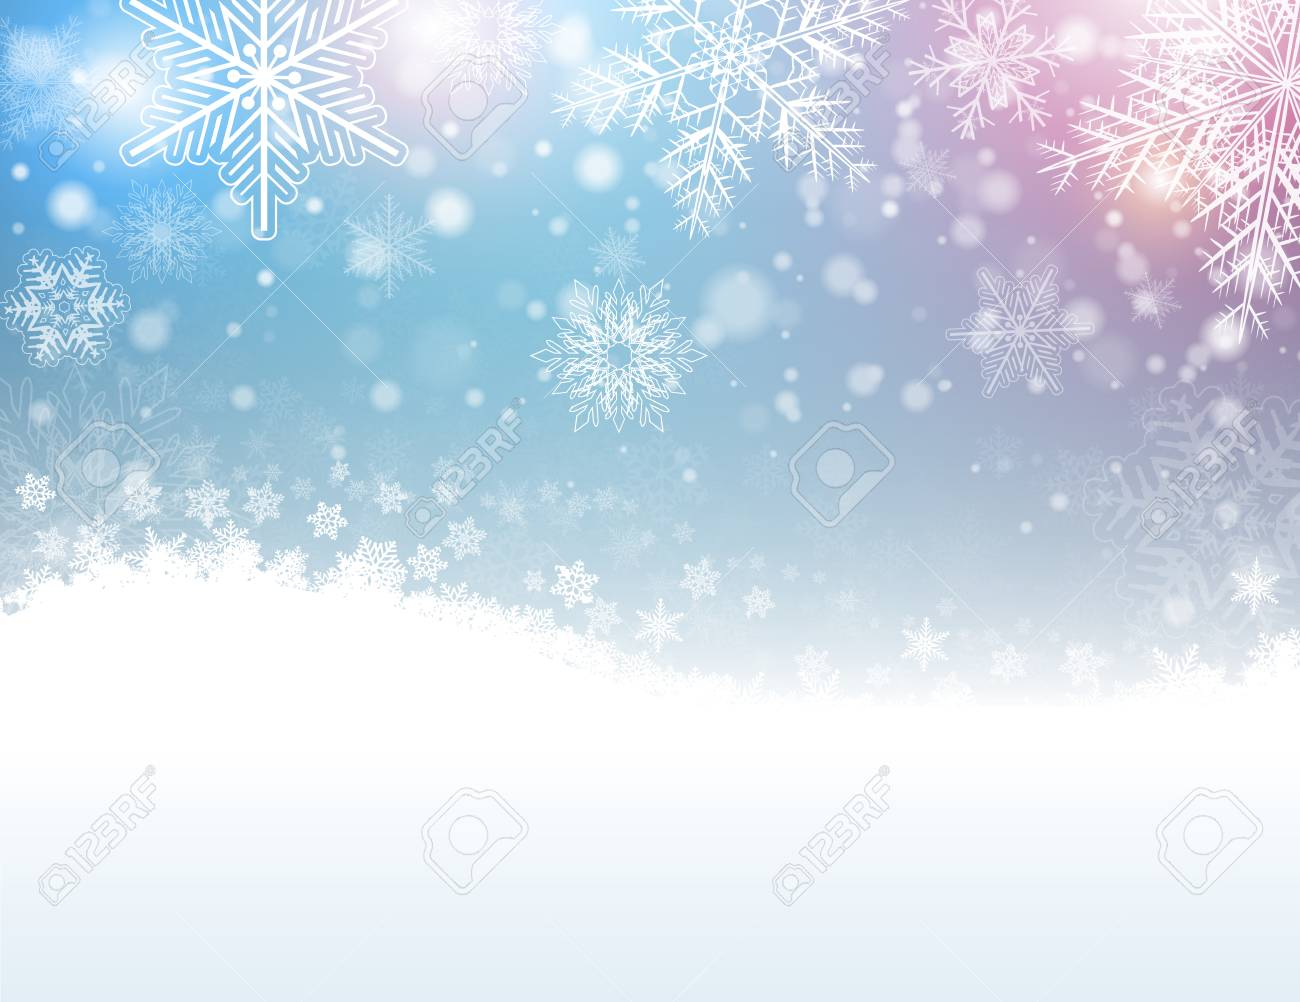 2019 year for women- Snowflakes Winter pictures